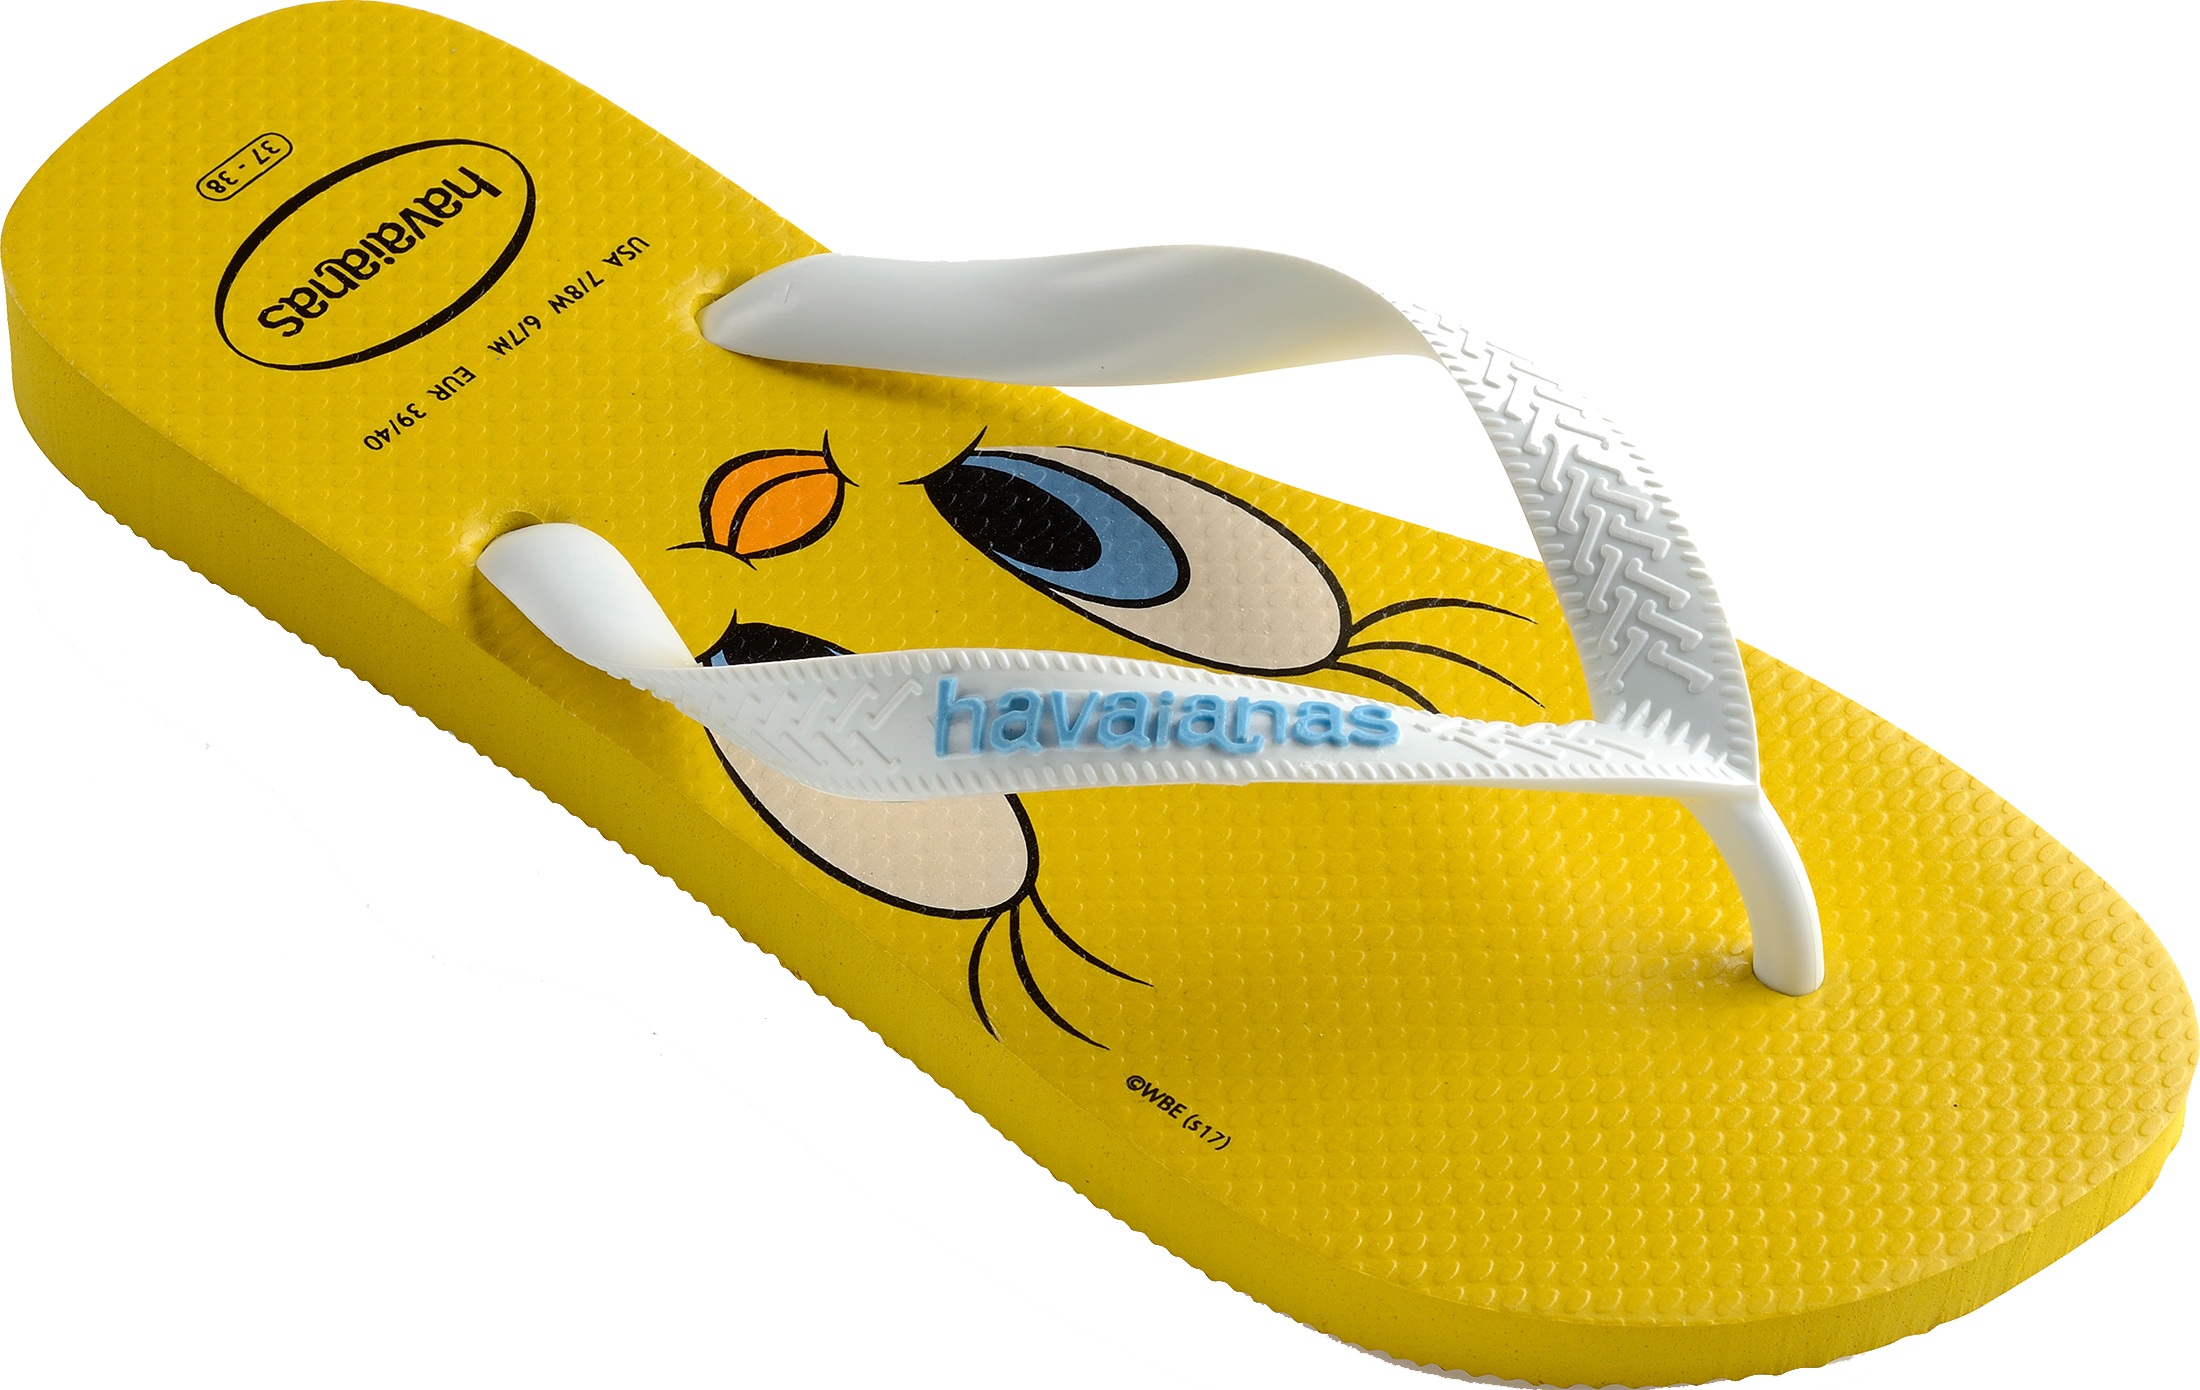 f71d774f1e6e10 Havaianas Looney Tunes Womens Yellow White Rubber Flip Flops - 35-36. About  this product. Picture 1 of 5  Picture 2 of 5  Picture 3 of 5 ...